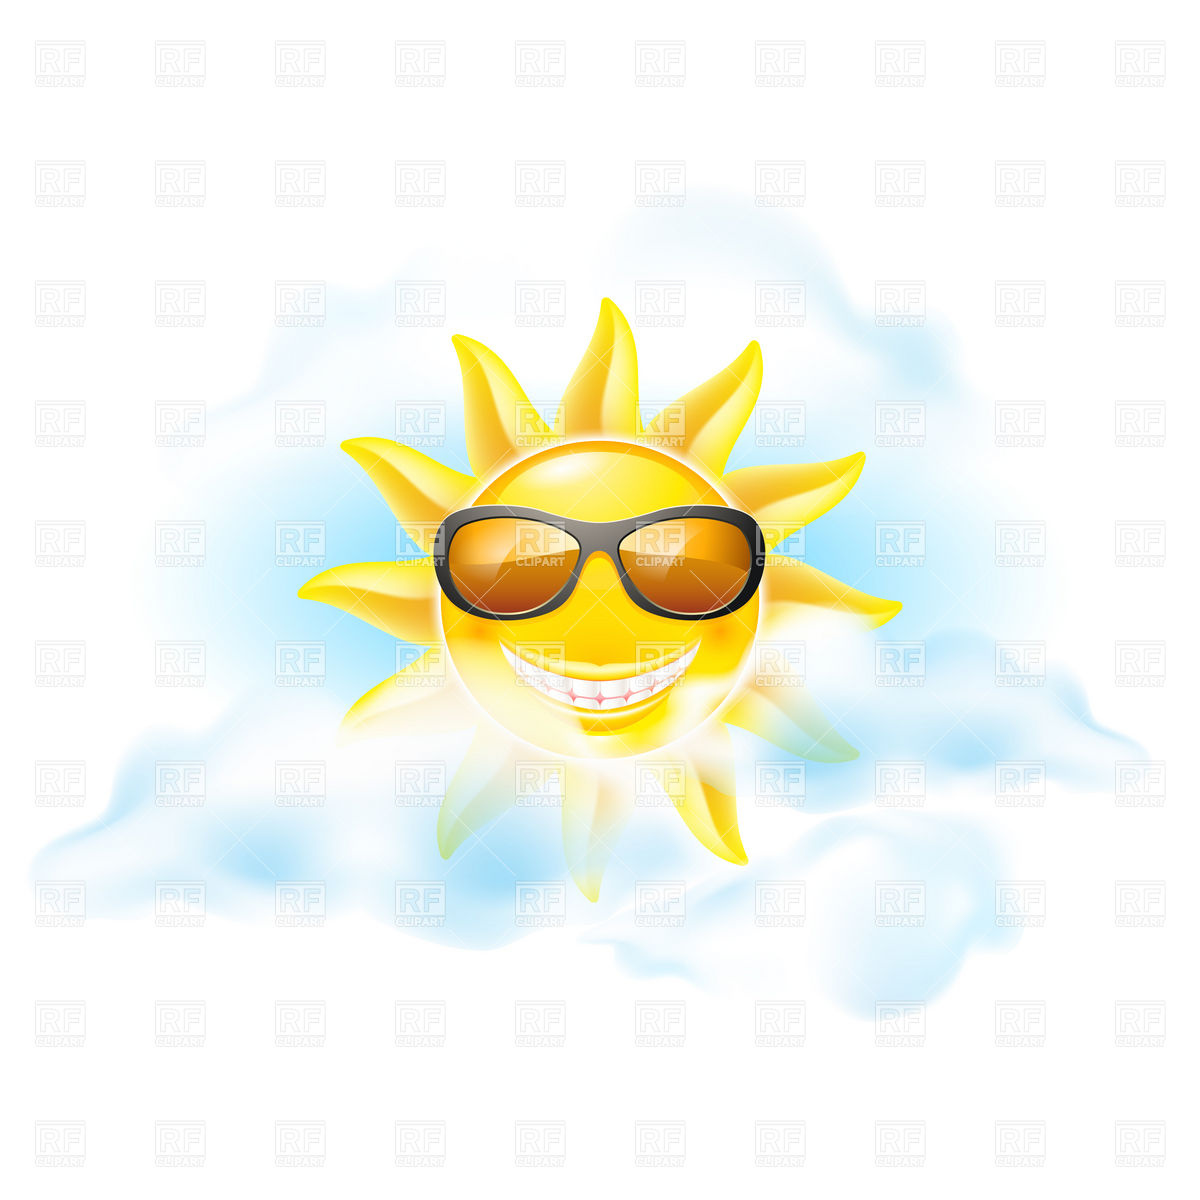 Free Sun With Sunglasses Clipart | www.tapdance.org